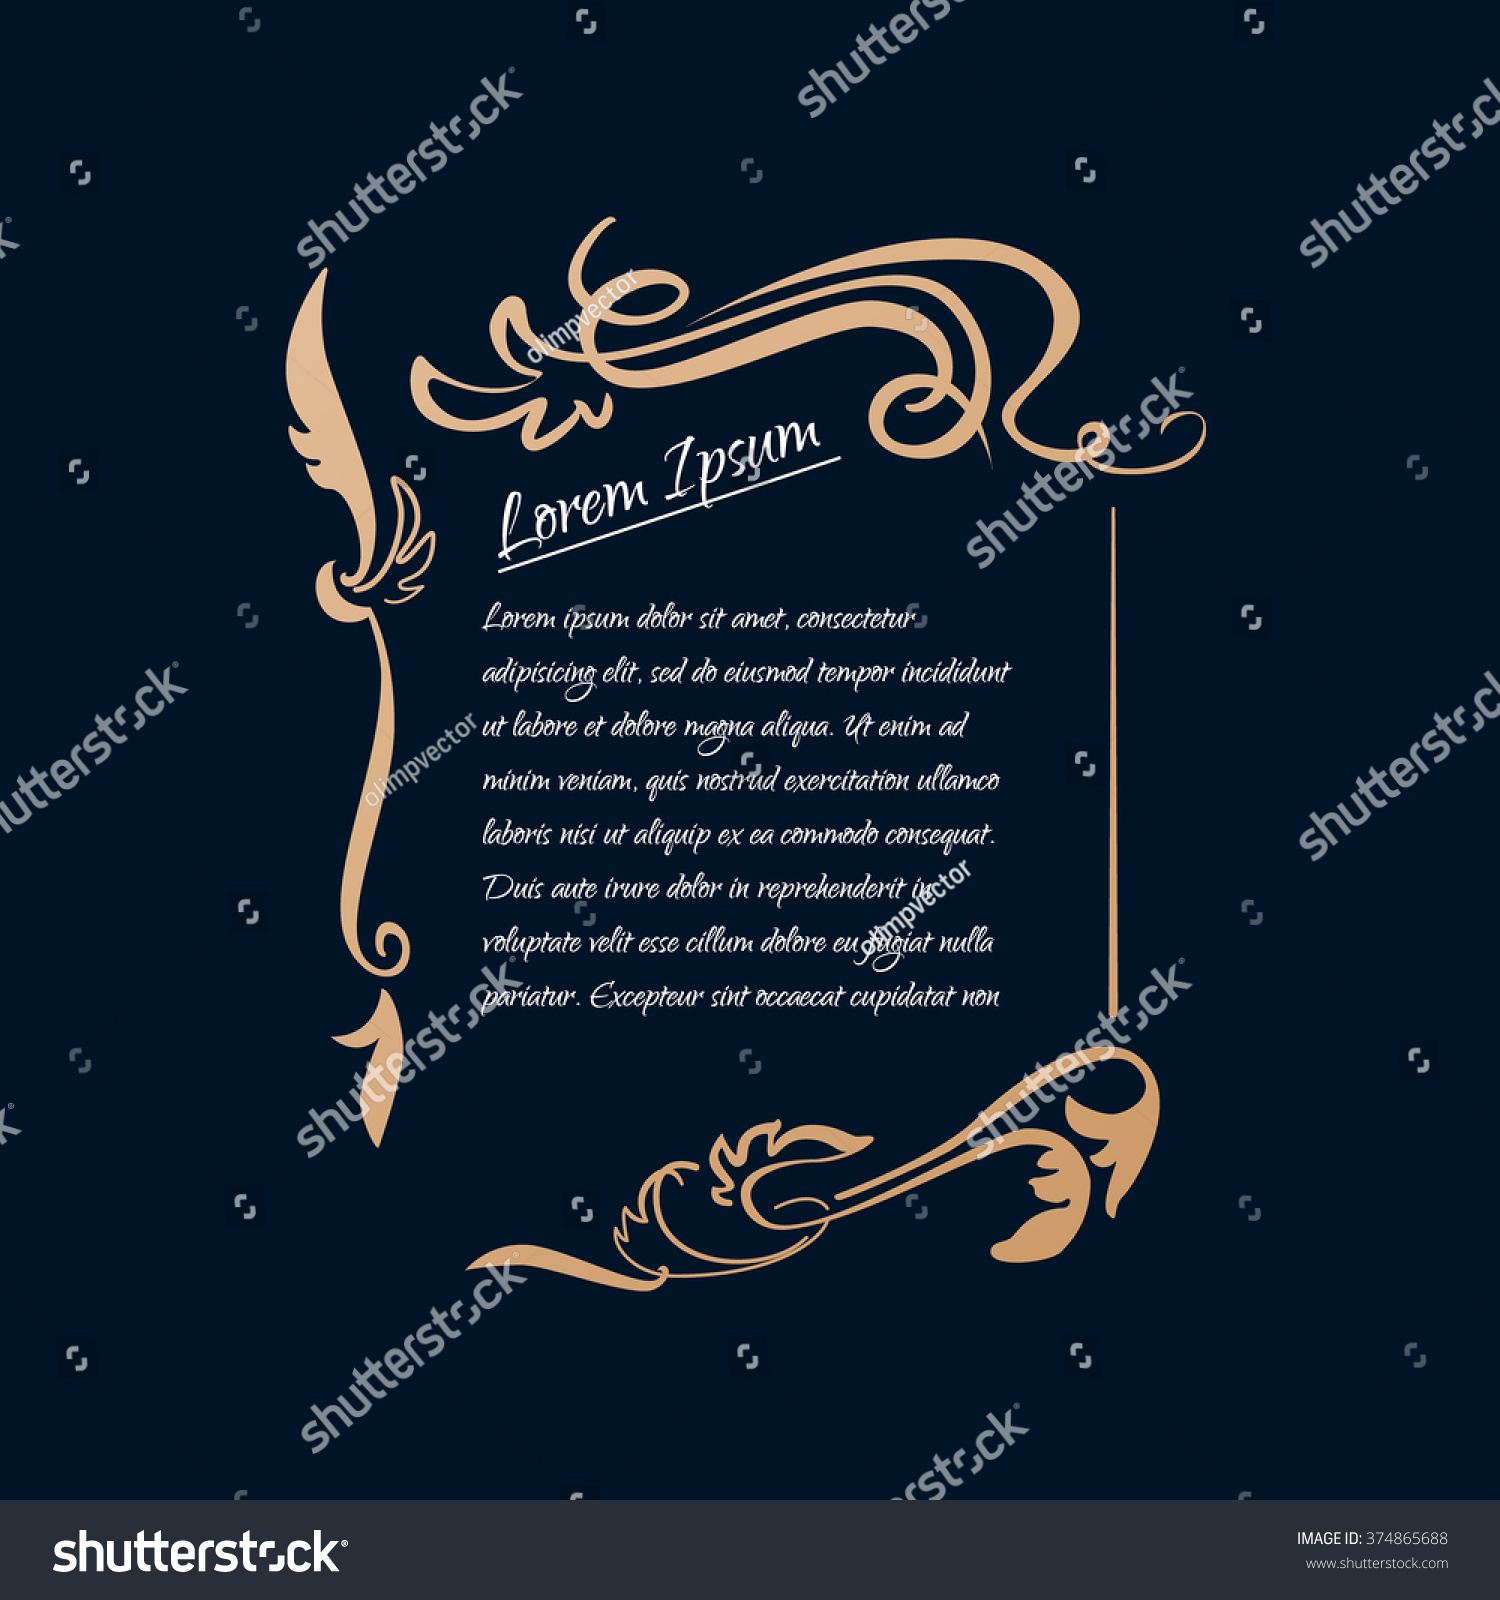 Border Designs Greeting Cards Template Design Stock Vector Royalty